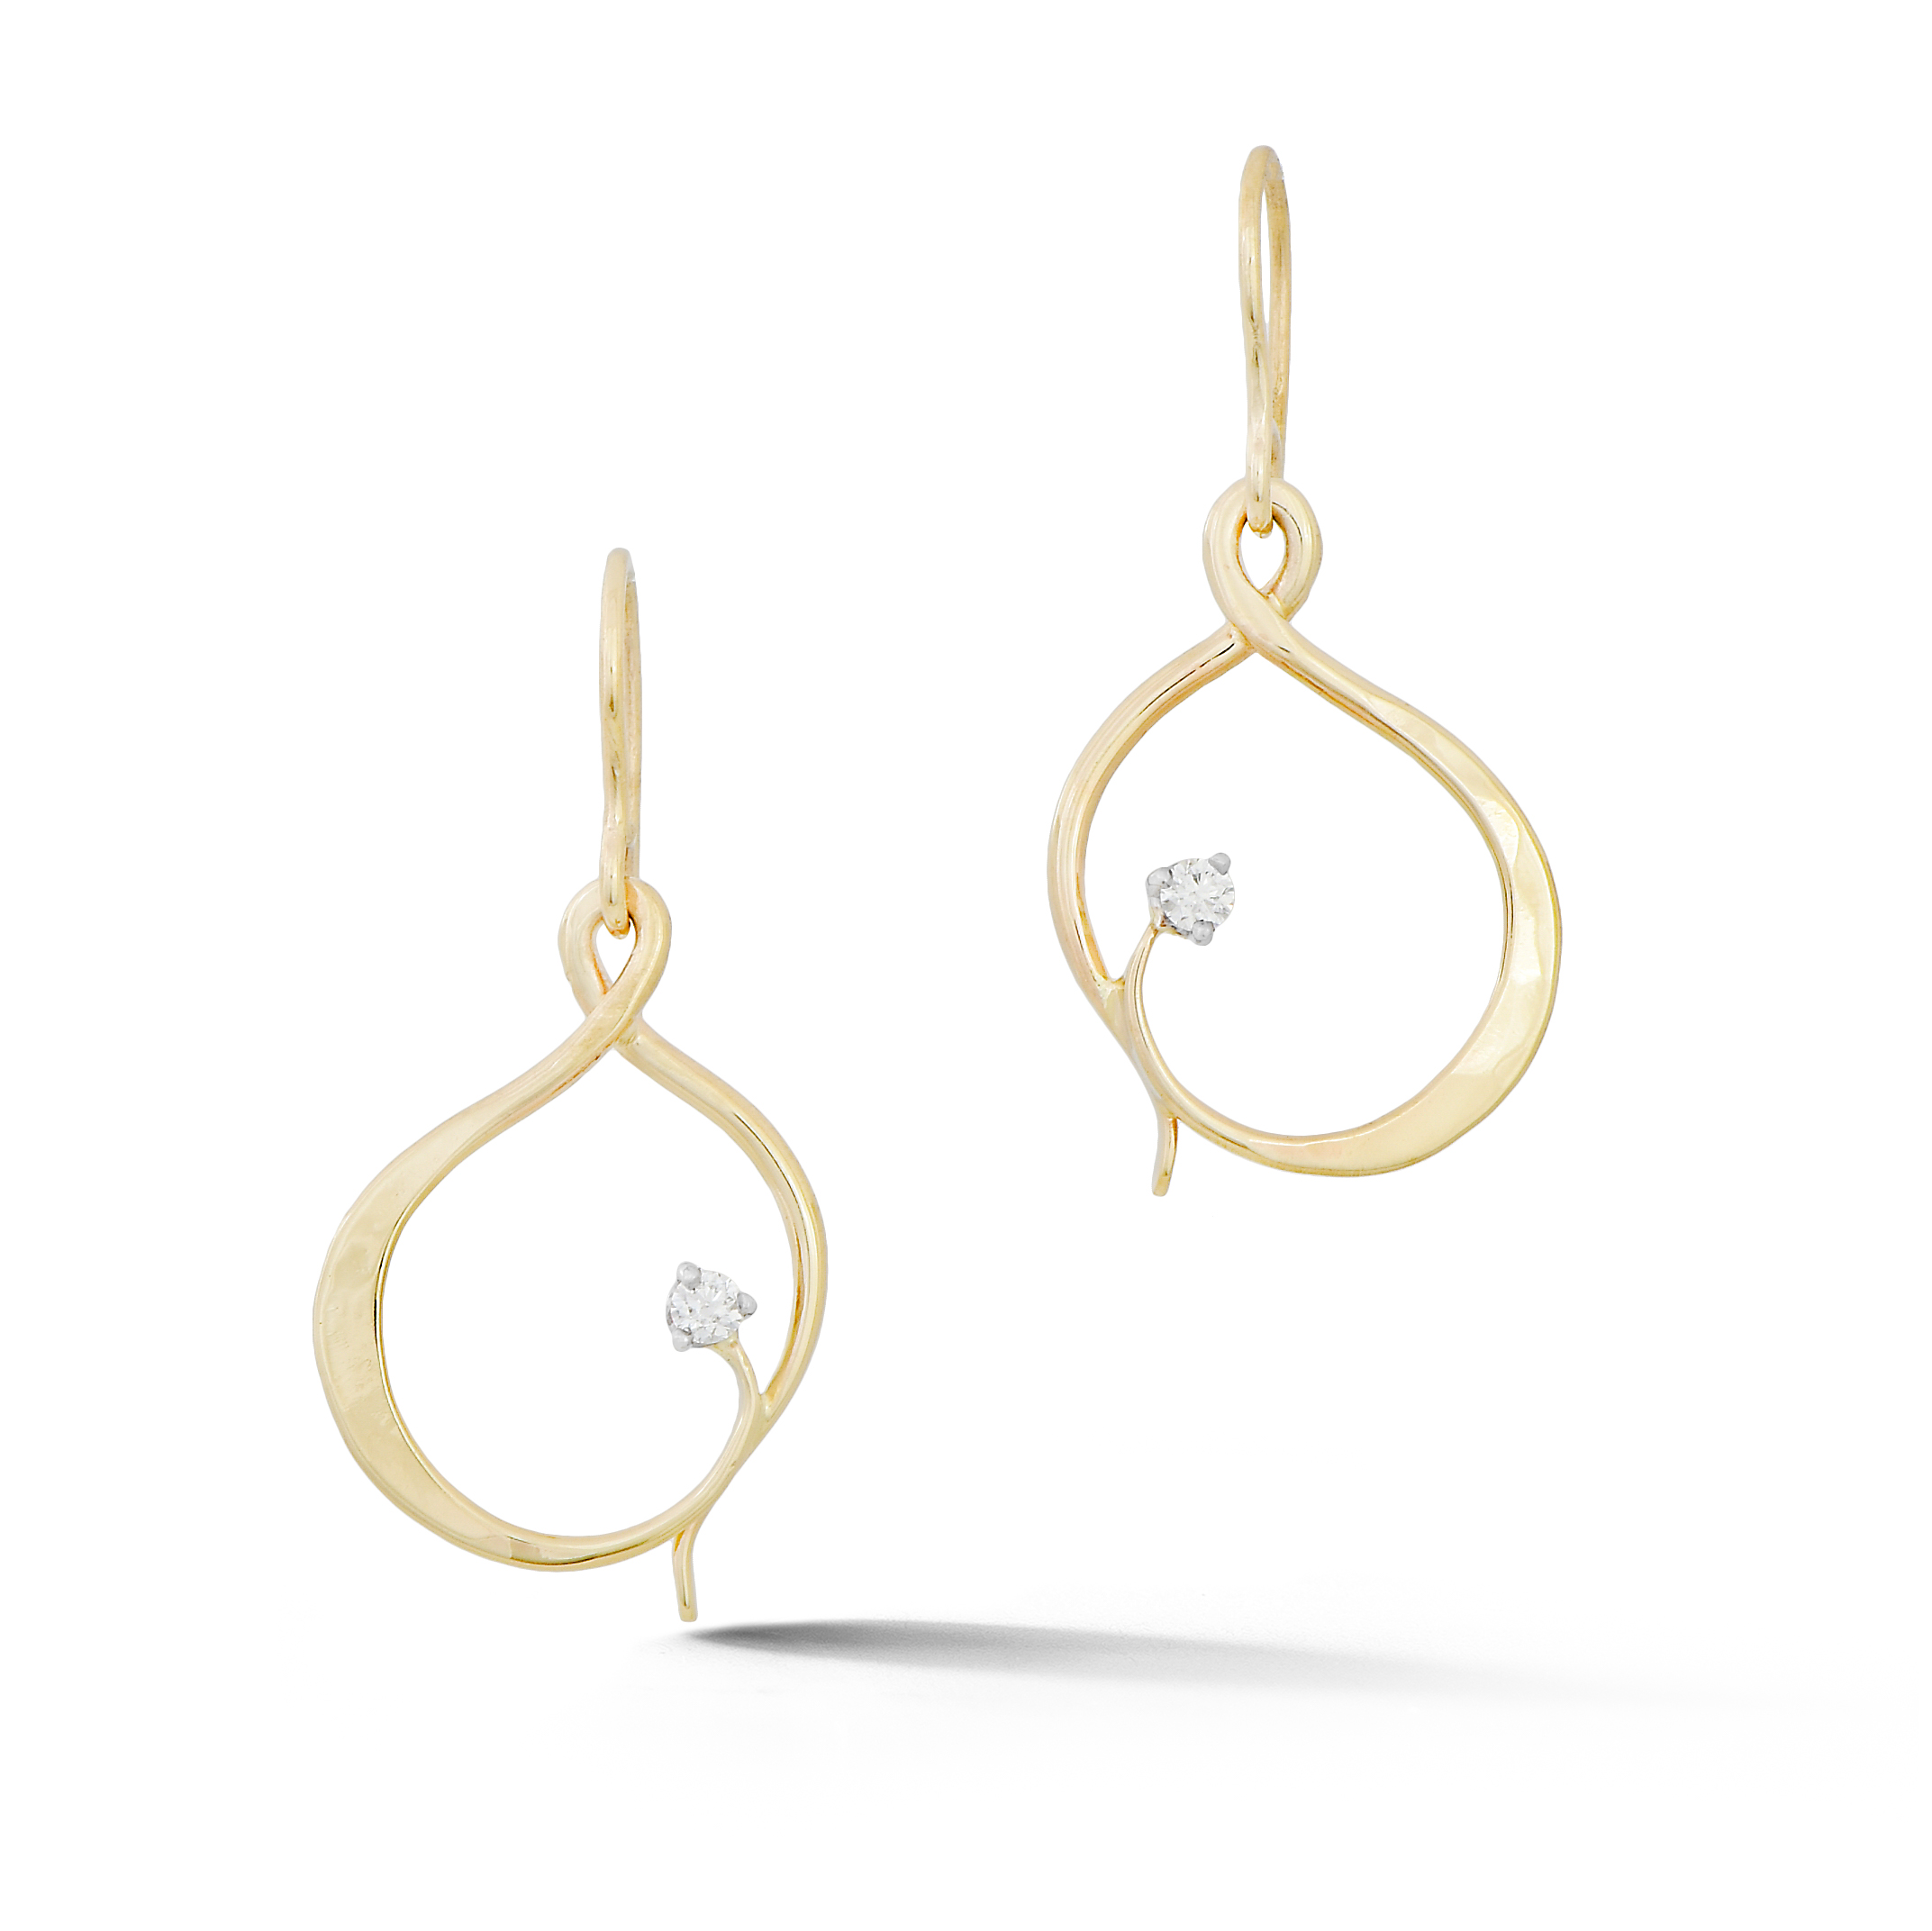 Hand forged gold earrings with diamonds